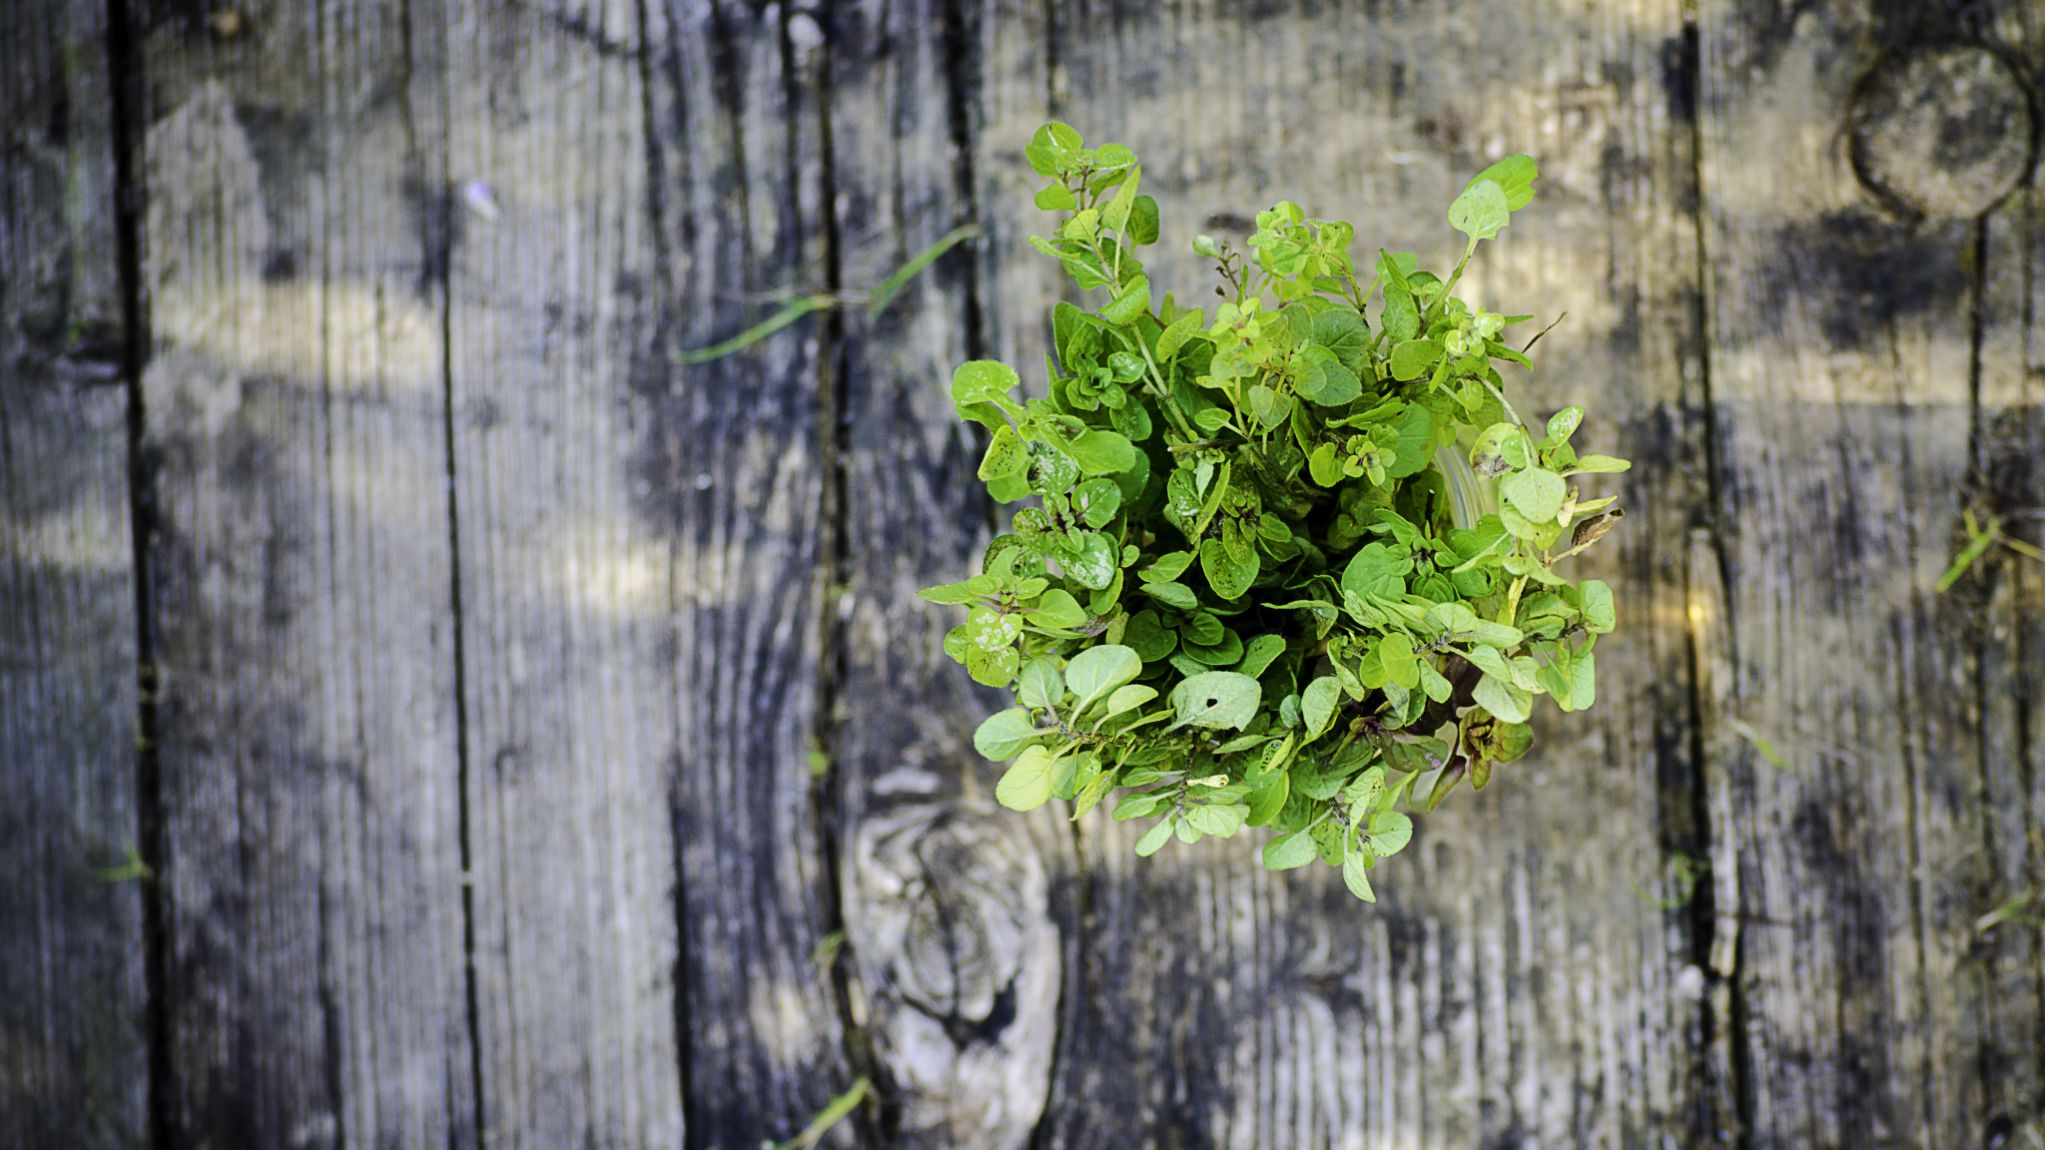 Oregano Oil: Benefits, Side Effects, Dosage, and Interactions